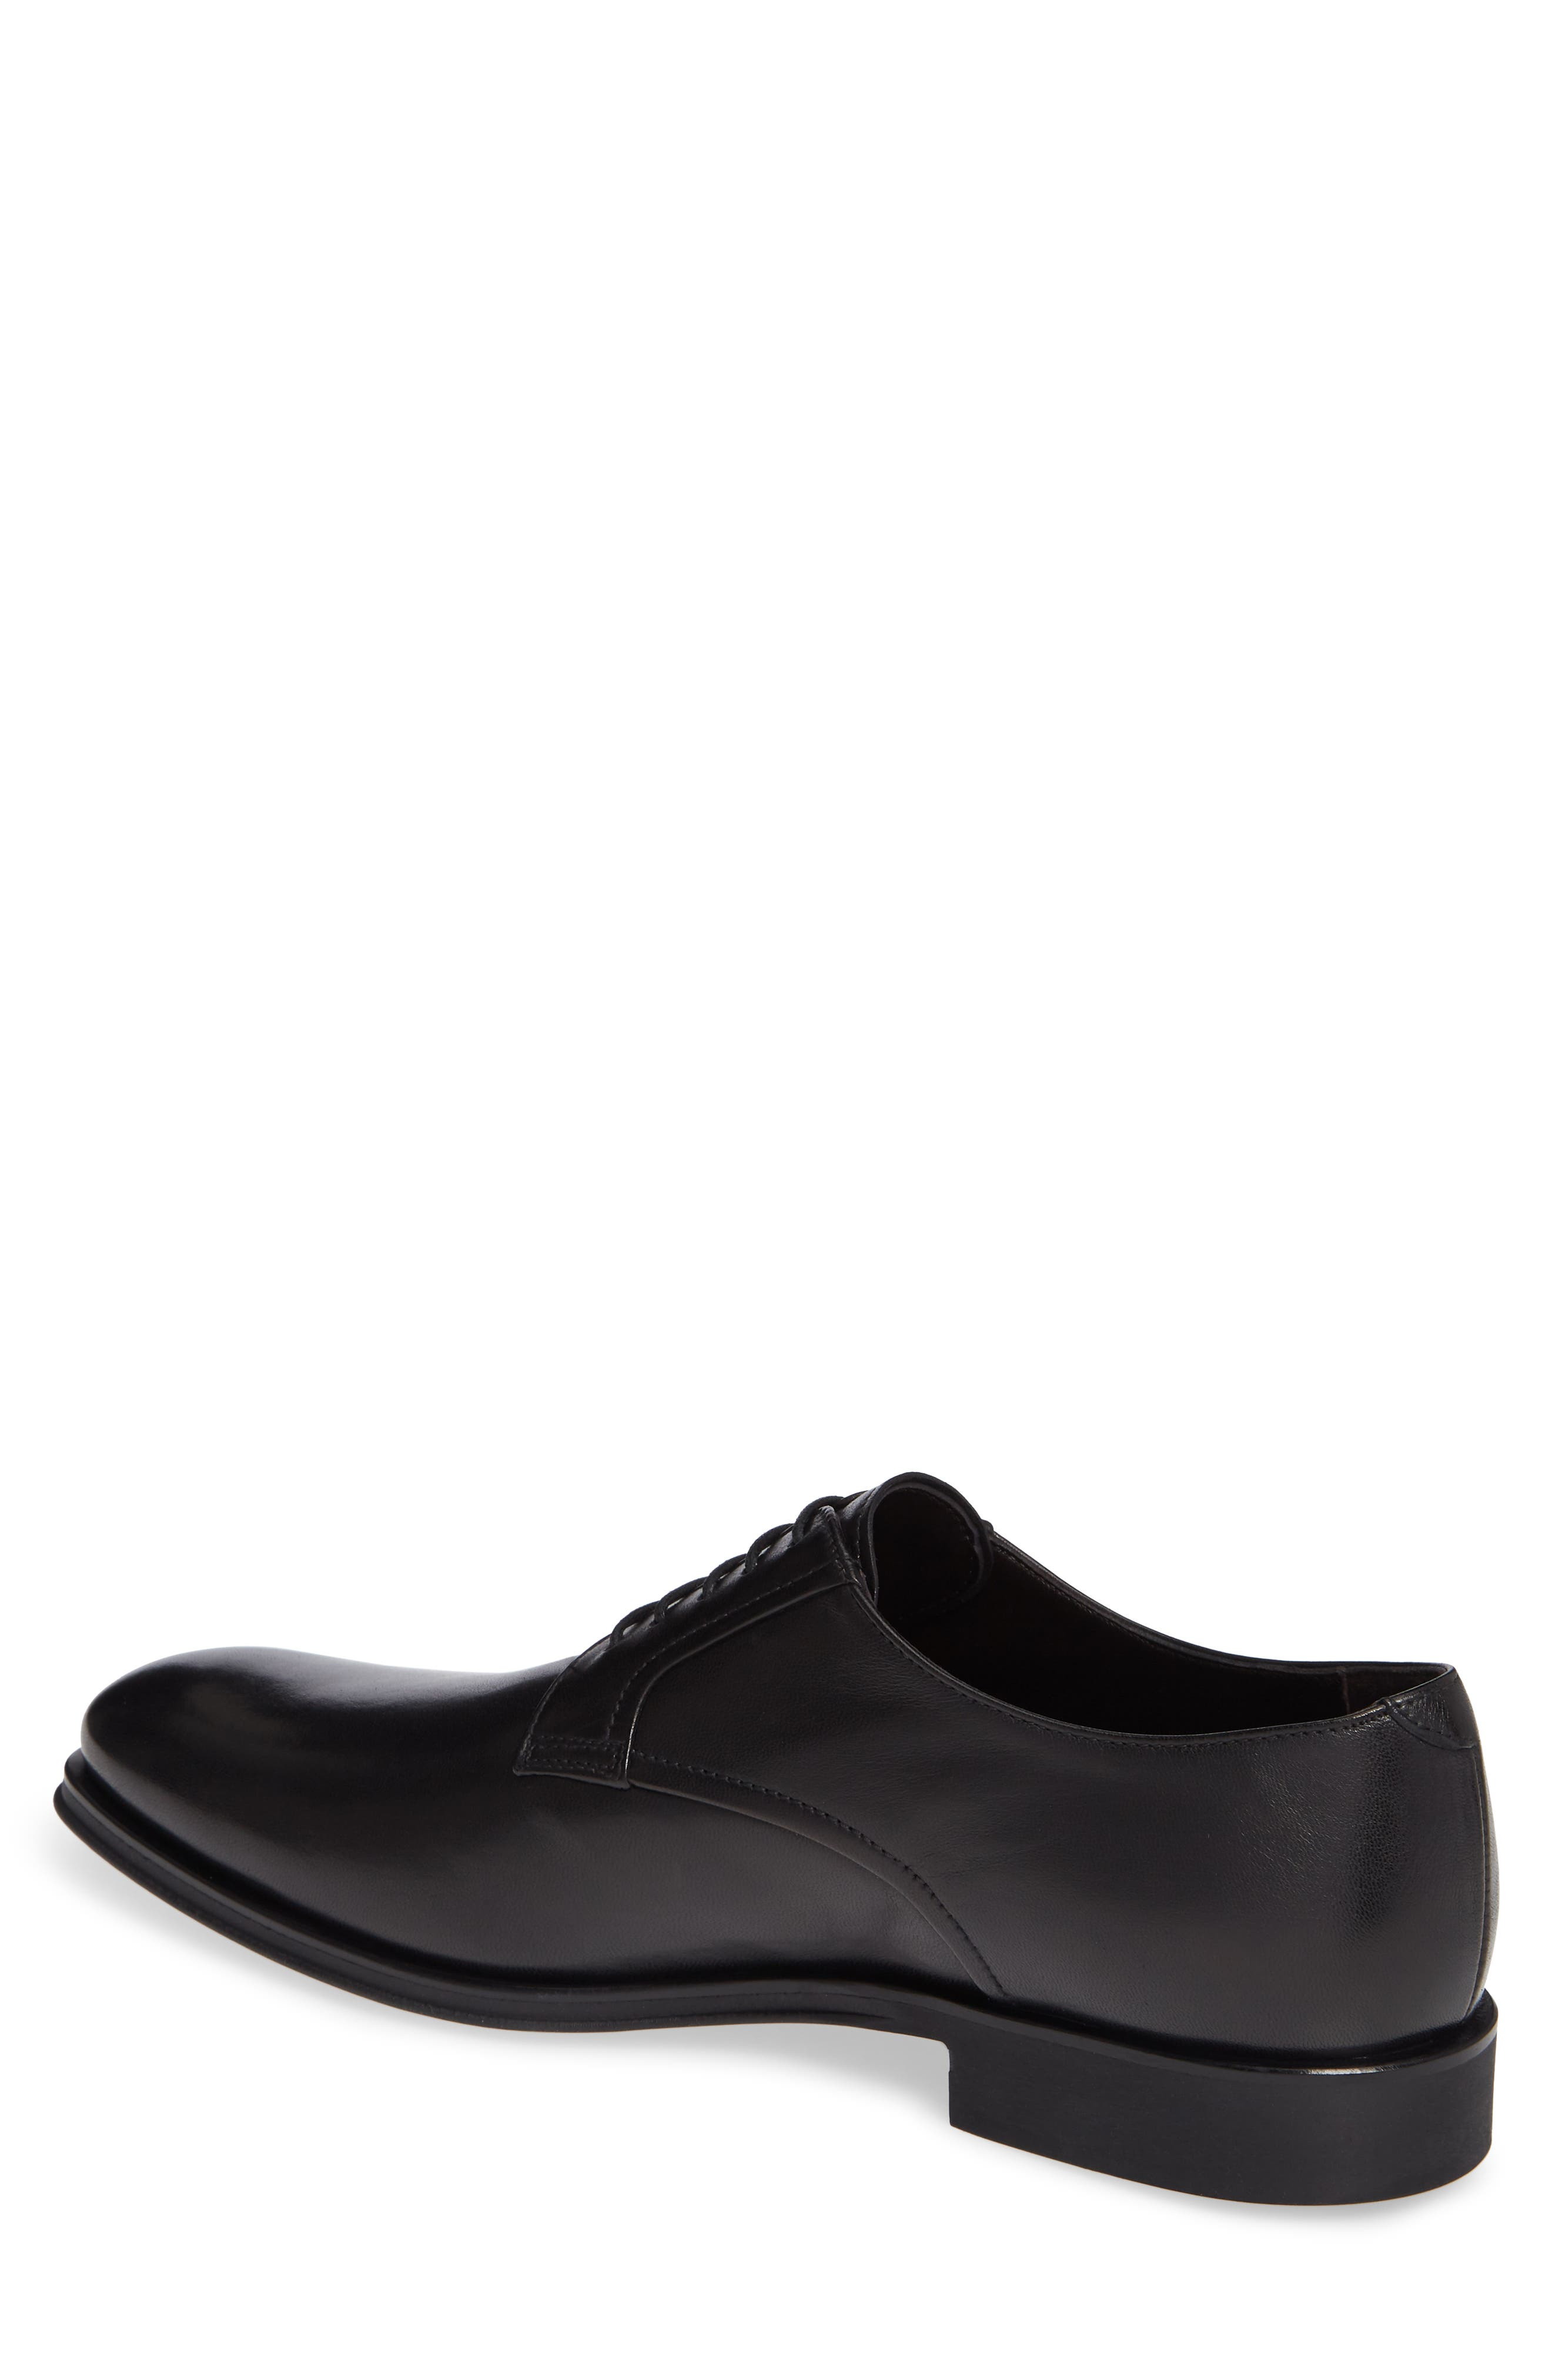 MS Zurich Oxford,                             Alternate thumbnail 2, color,                             BLACK LEATHER